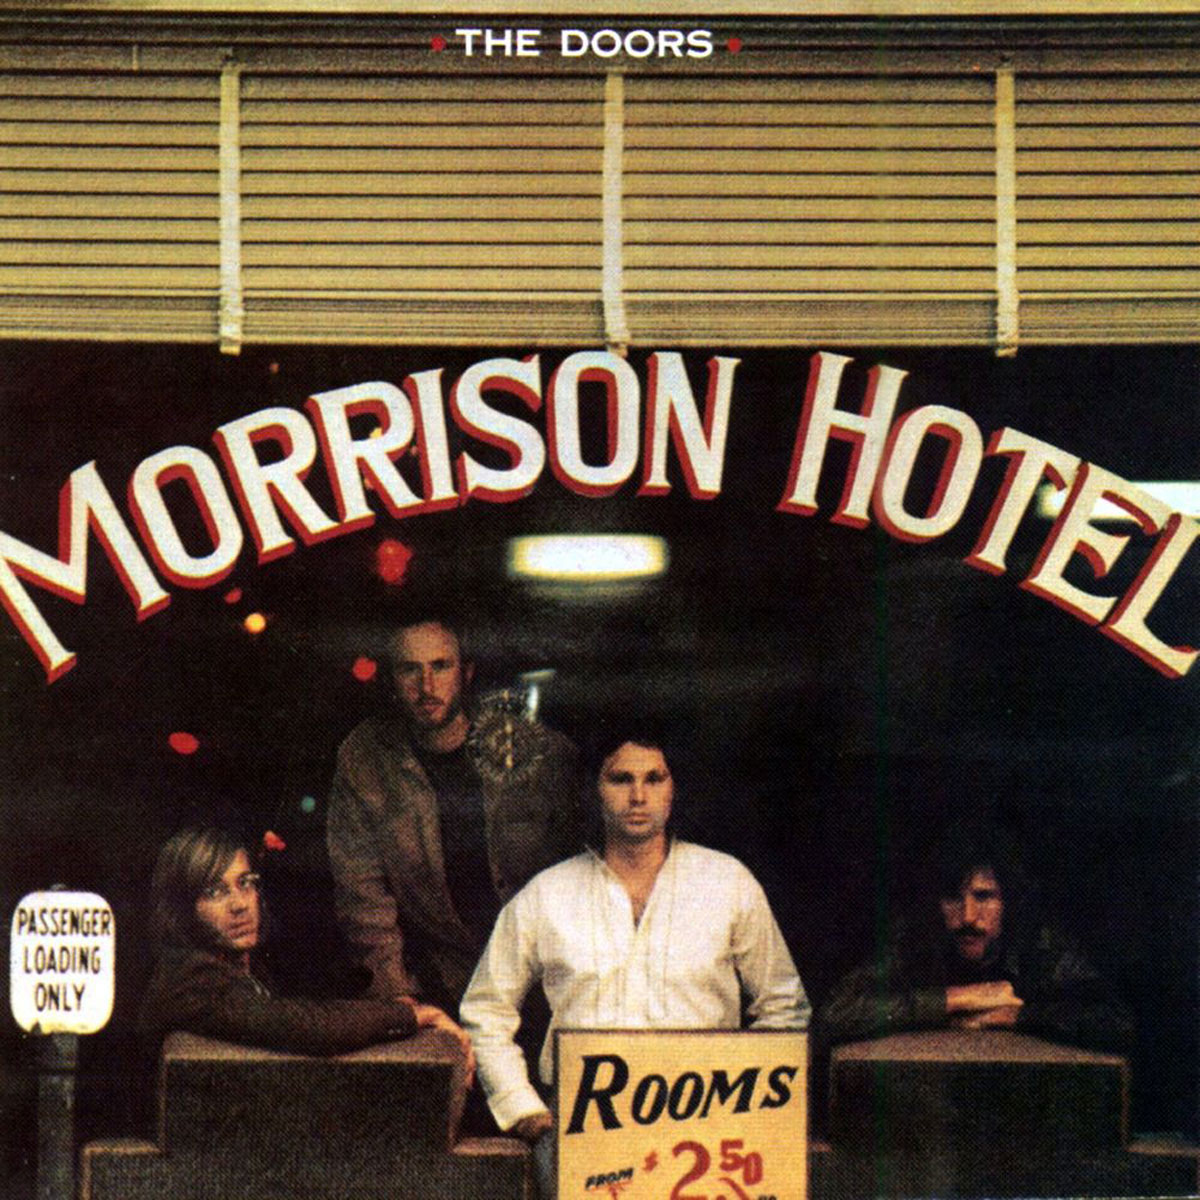 The Doors The Doors. Morrison Hotel. 40th Anniversary cd the doors l awoman 40th anniversary edition